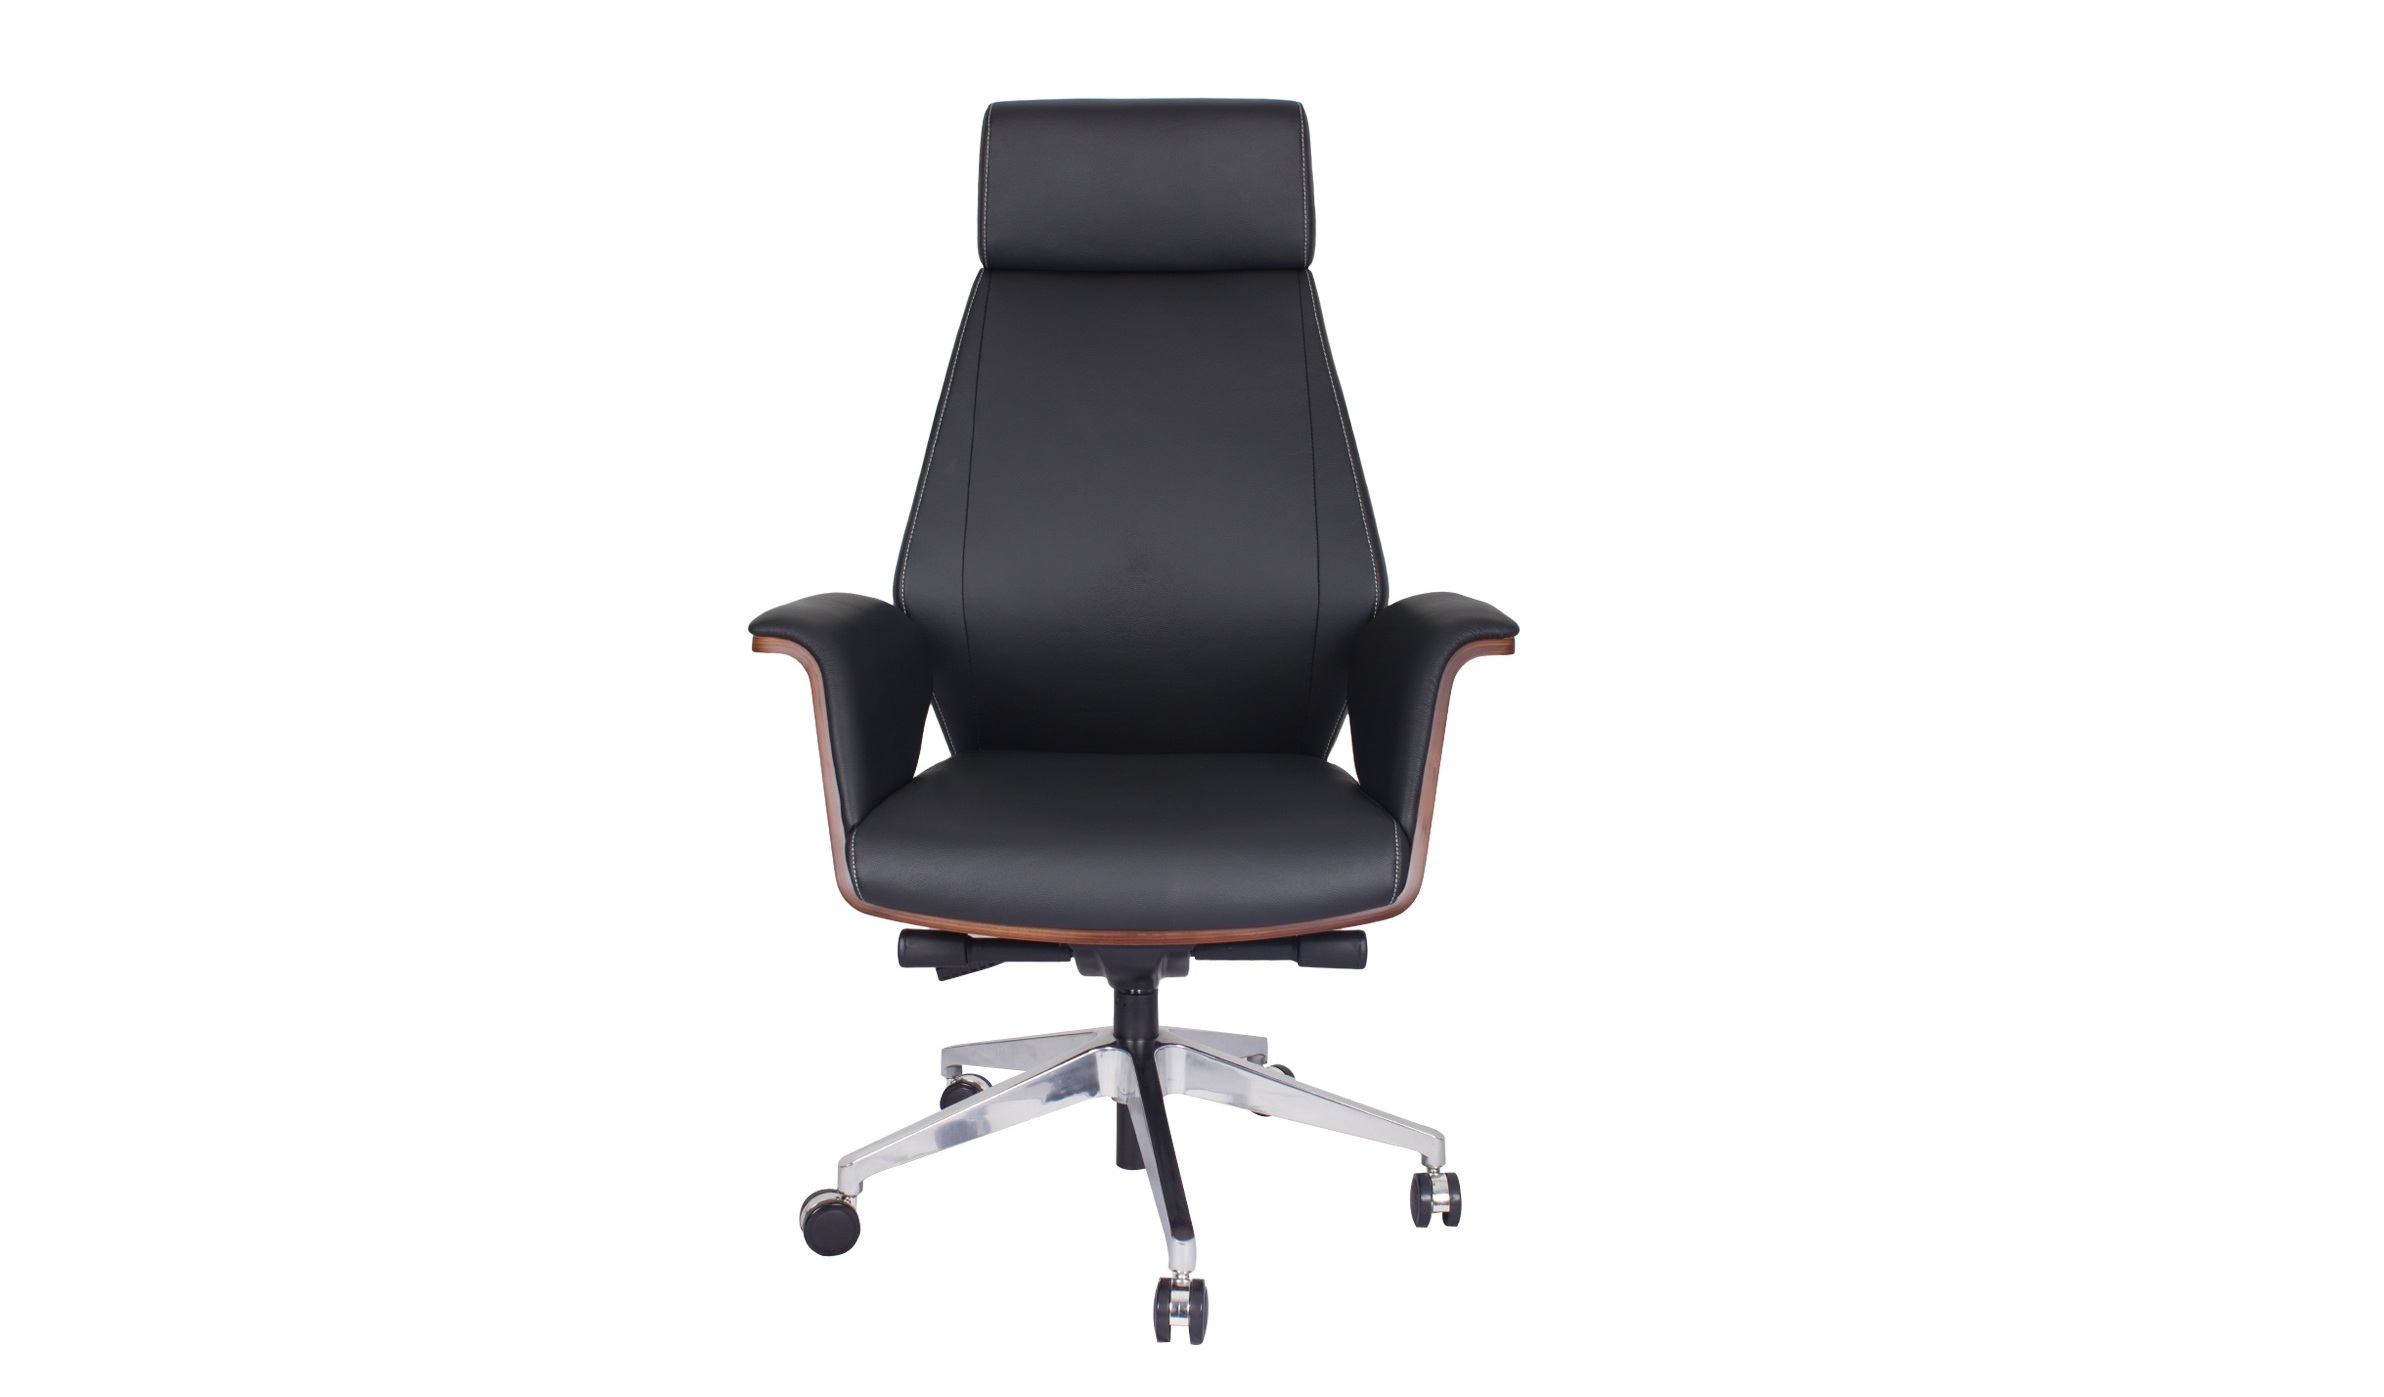 'Coupe' Leather Office Chair With Headrest